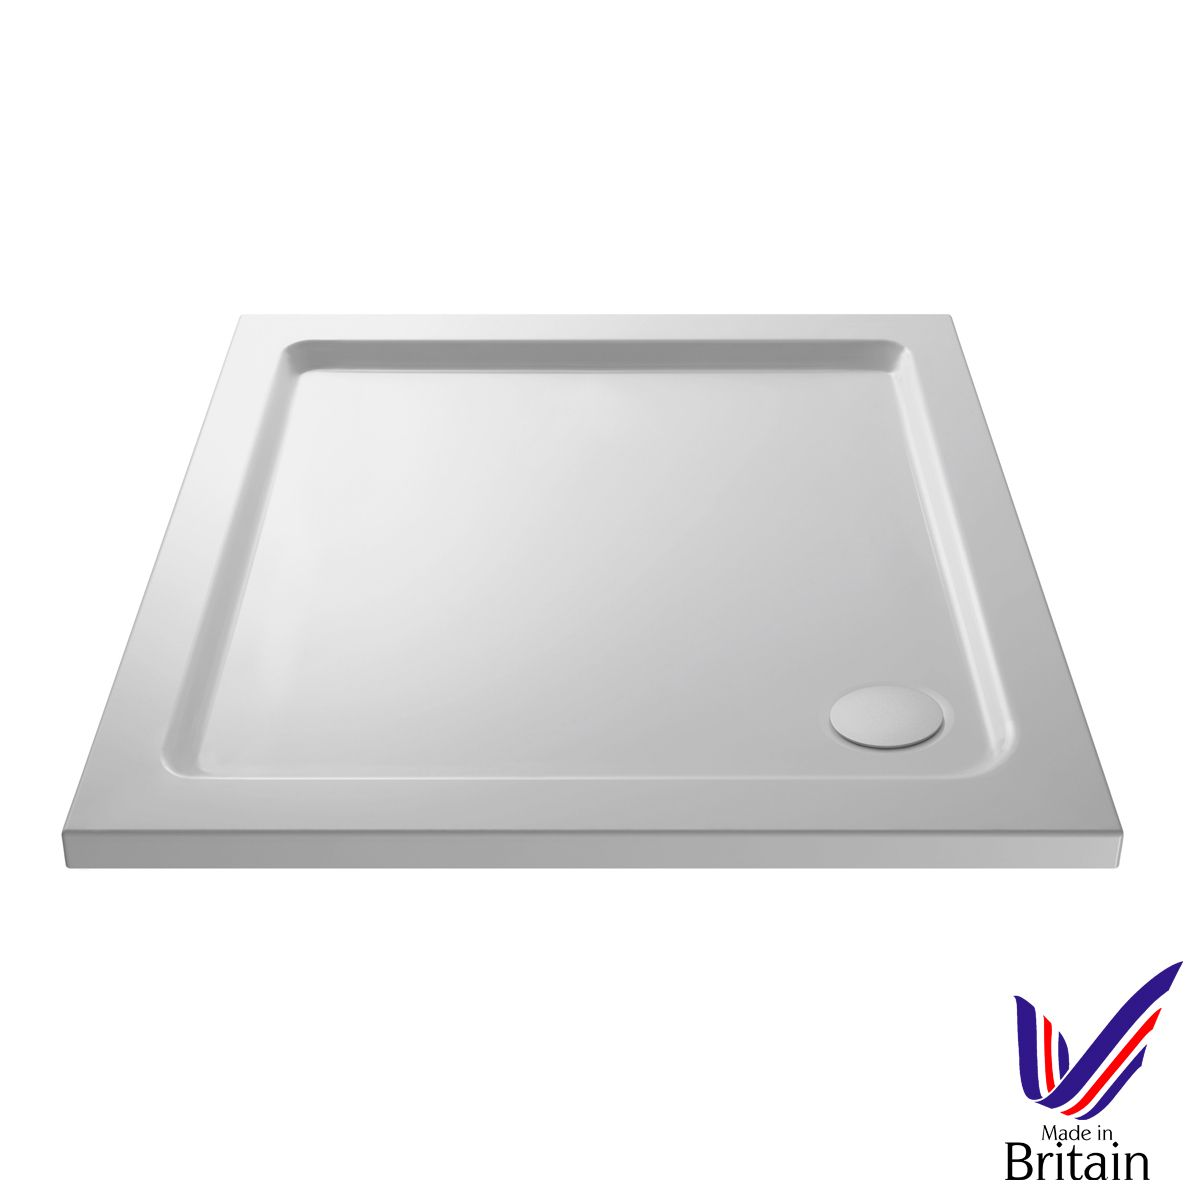 700 x 700 Shower Tray Square Low Profile by Pearlstone